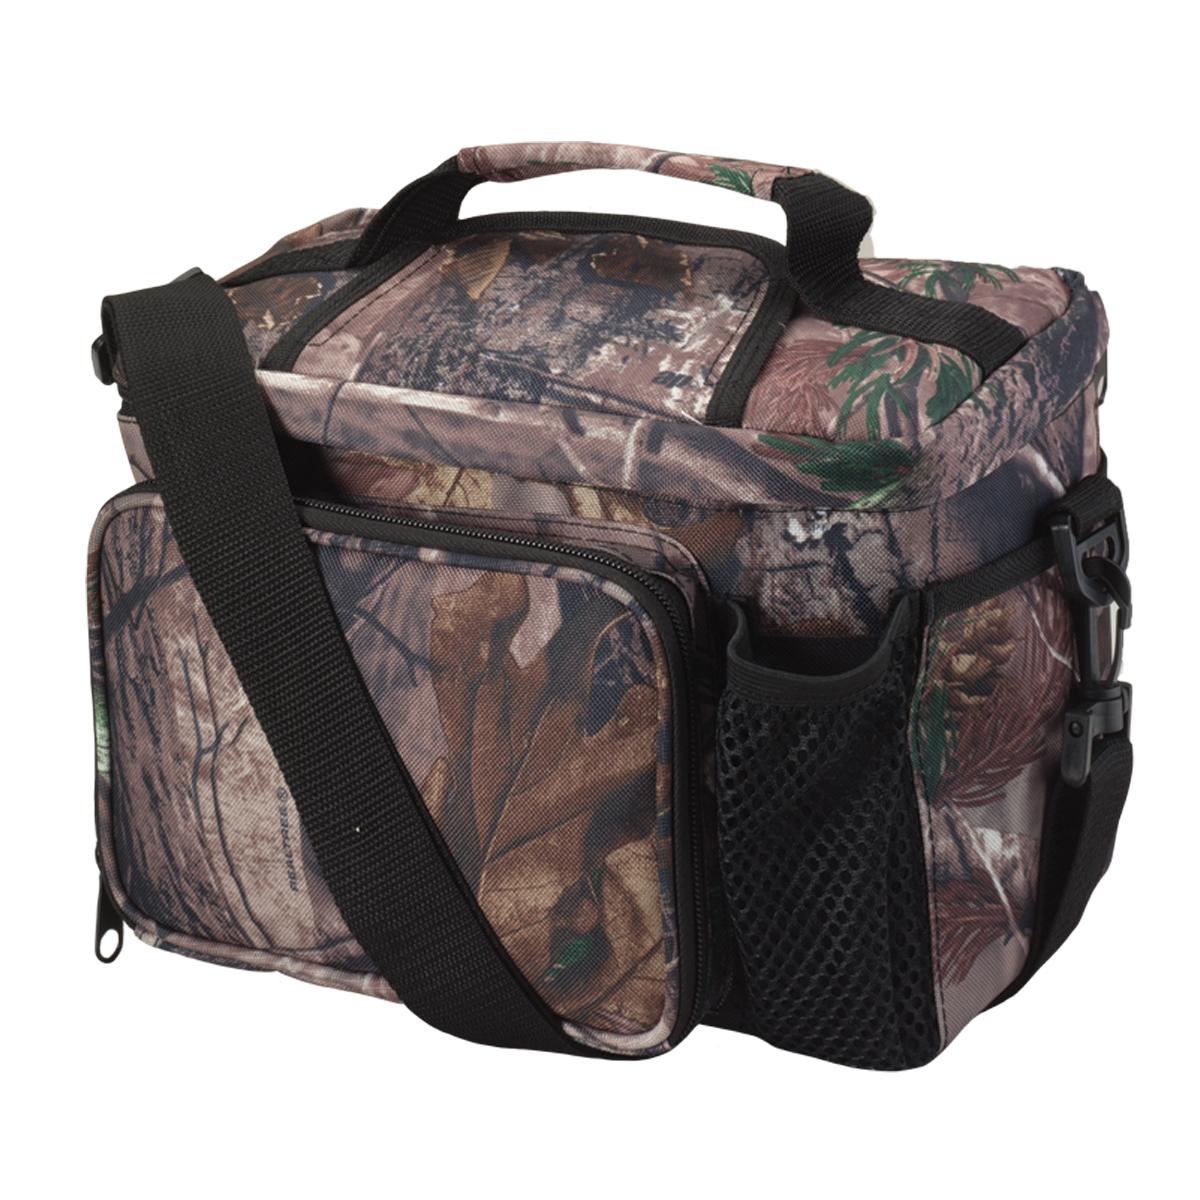 Realtree Camo Cooler Lunch Bag